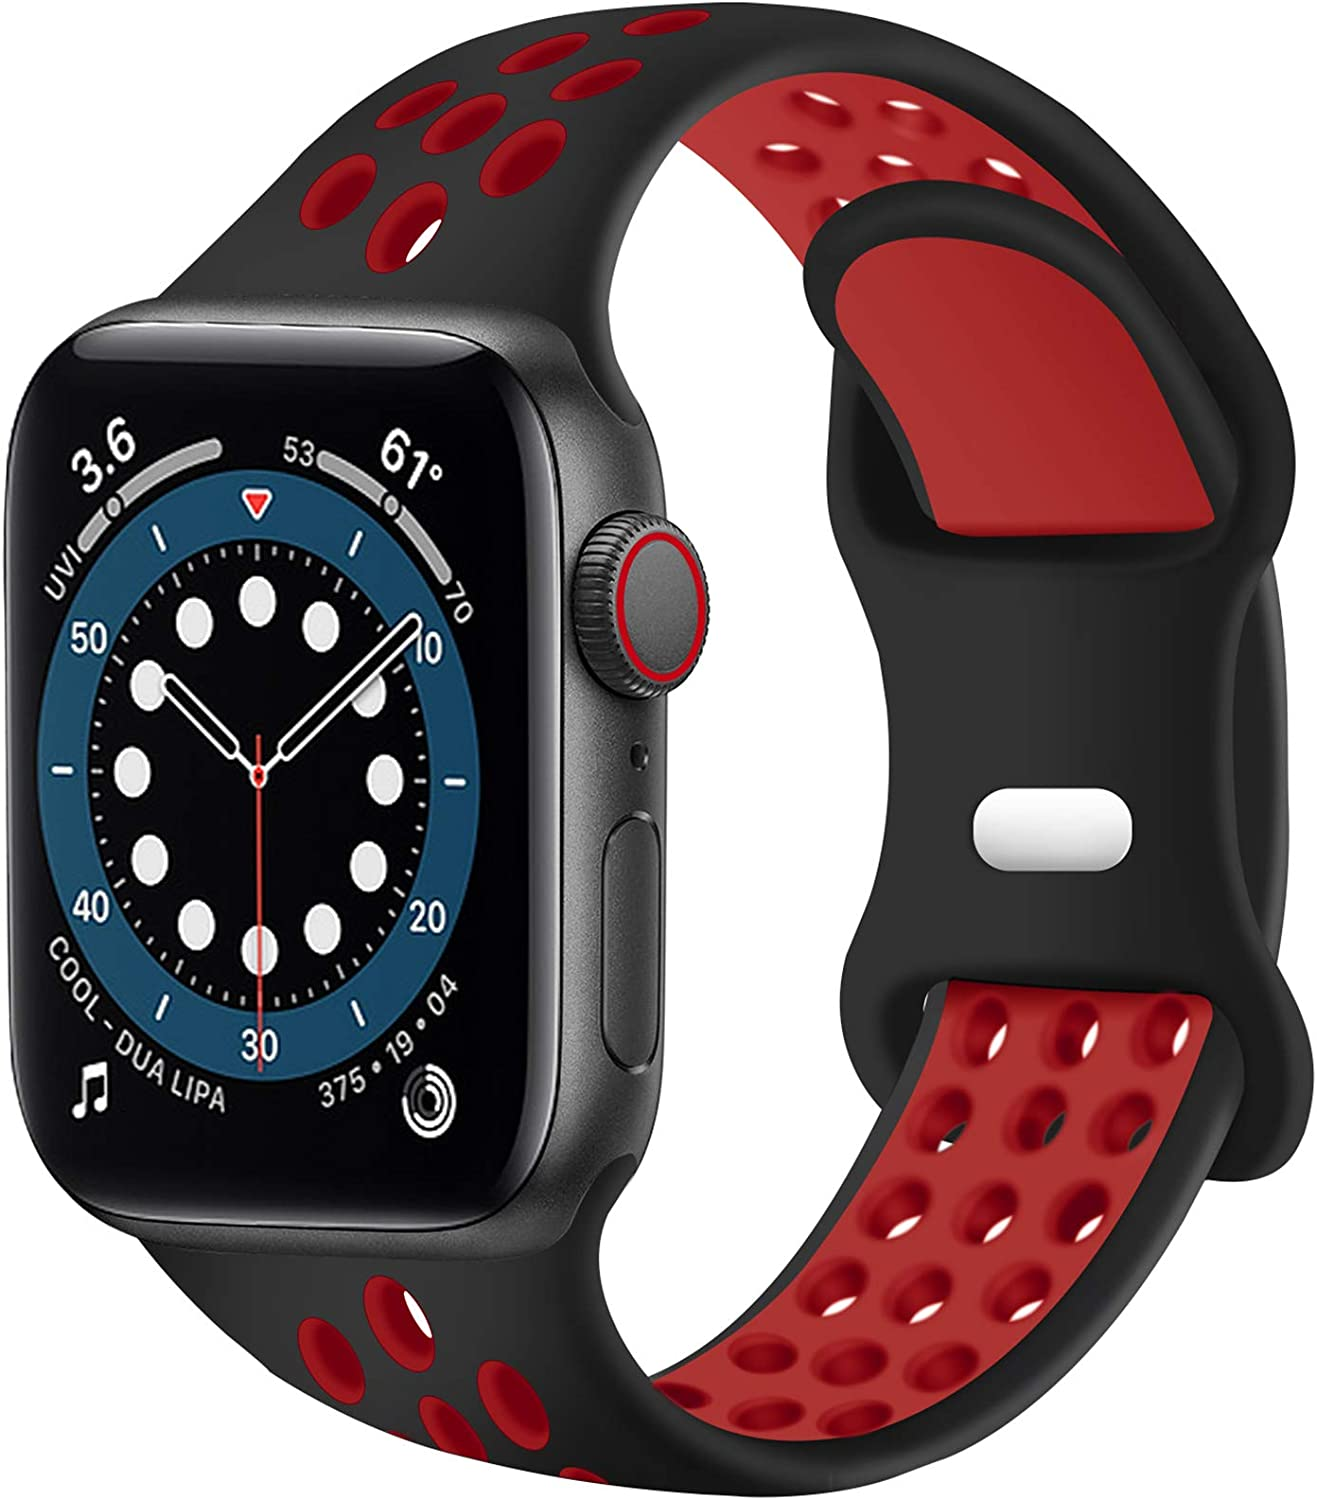 SVISVIPA Sport Bands Compatible for Apple Watch Bands 42mm 44mm,Breathable Soft Silicone Sport Women Men Replacement Strap Compatible with iWatch Series SE/6/5/4/3/2/1,Black Red